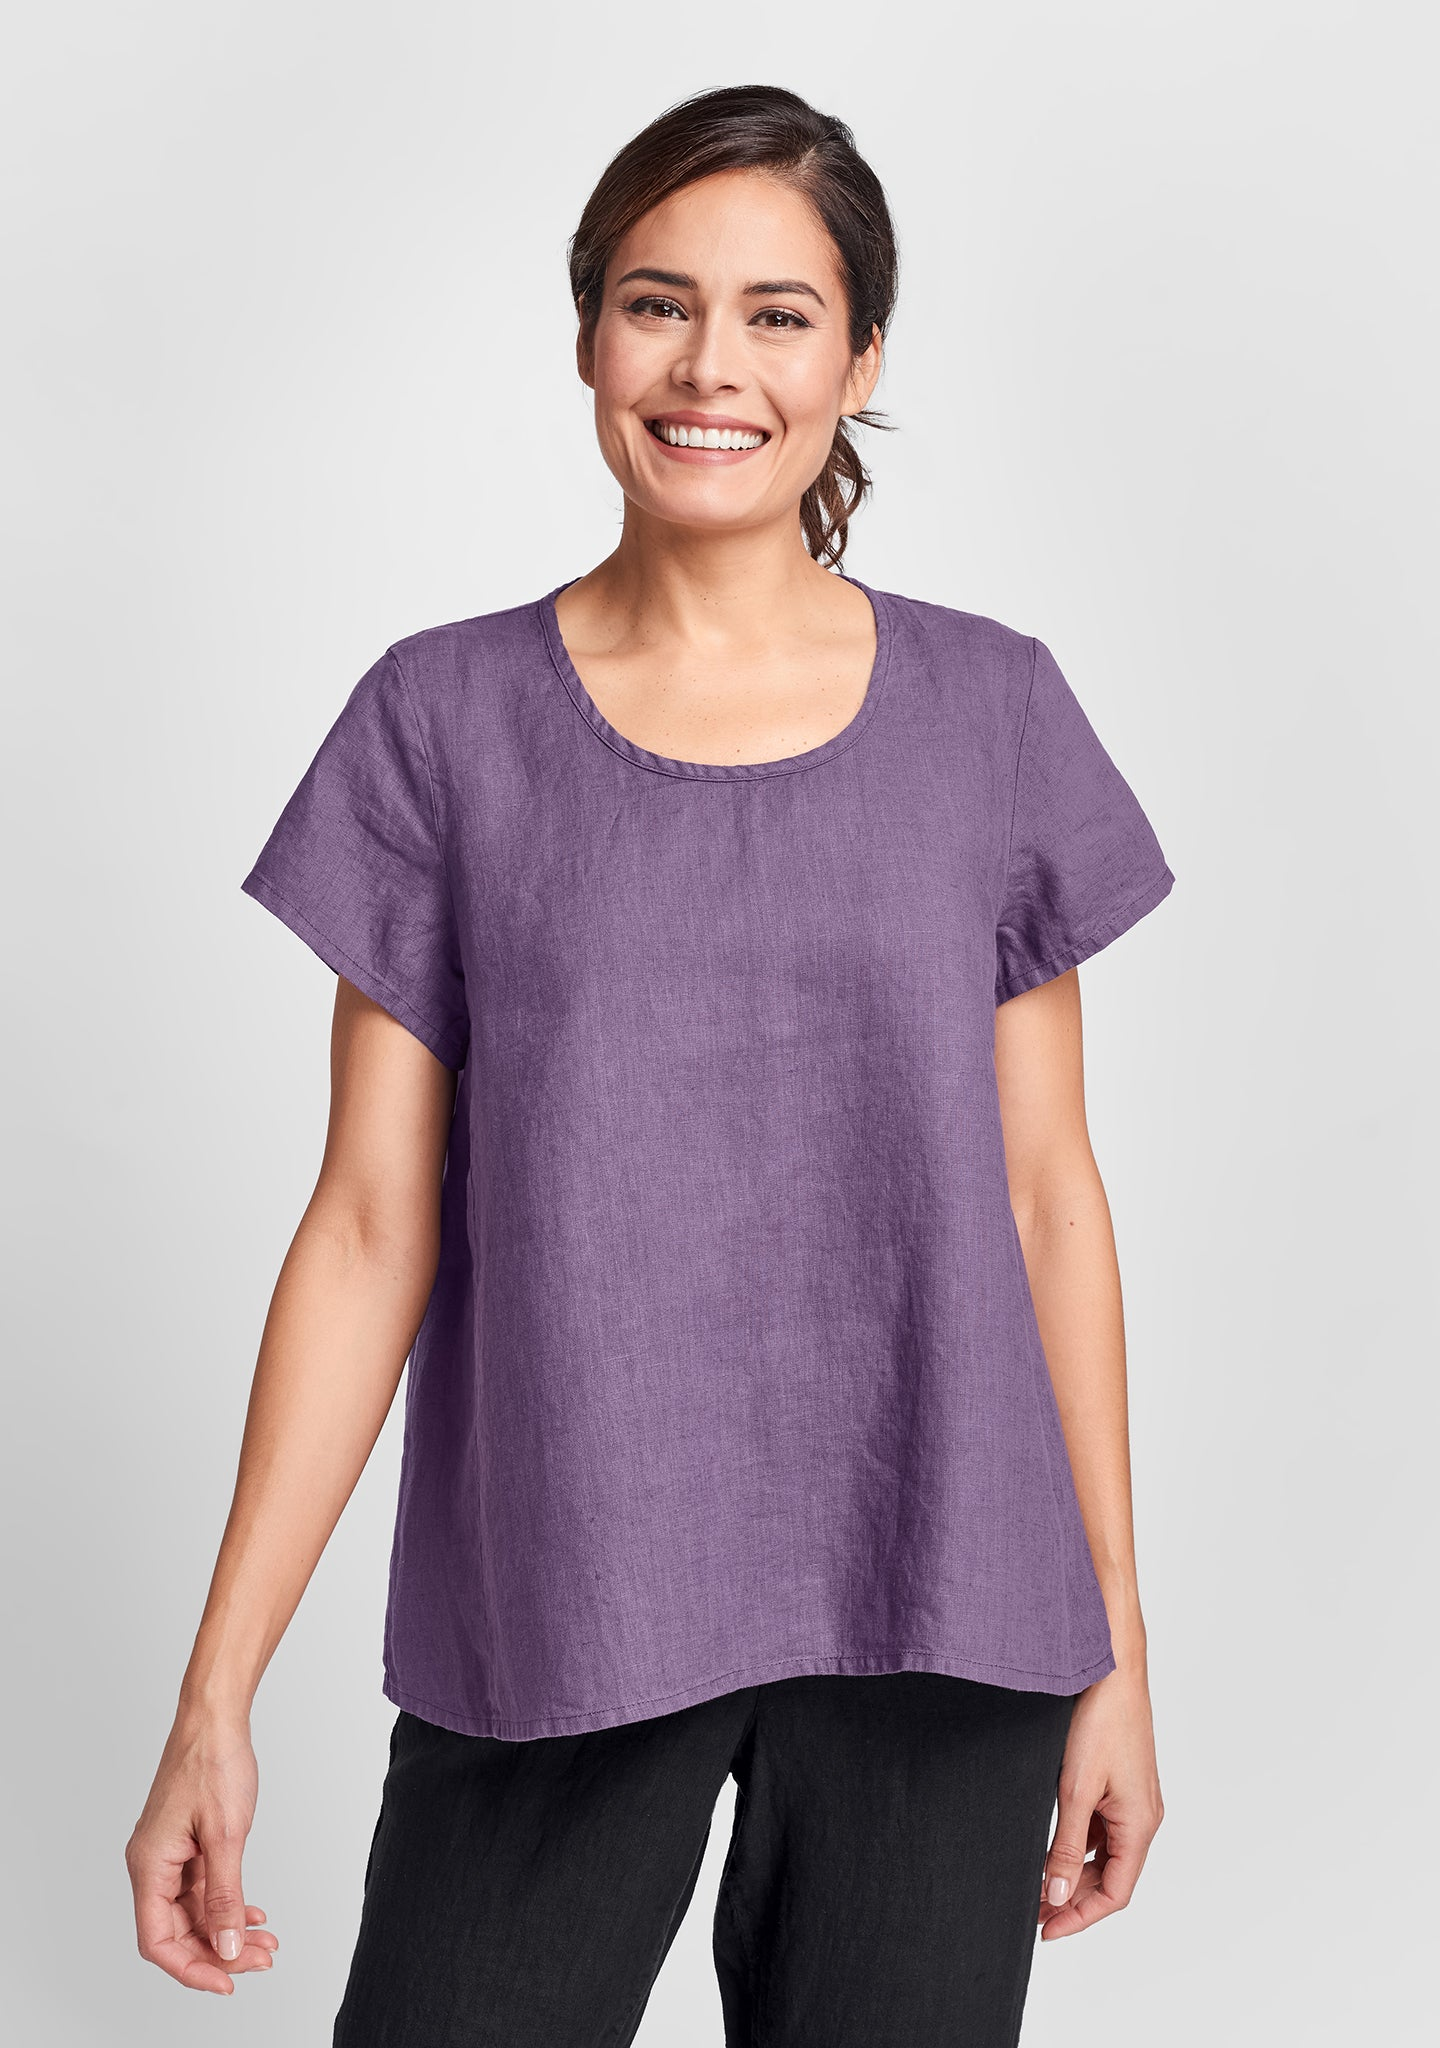 weightless tee linen t shirt purple